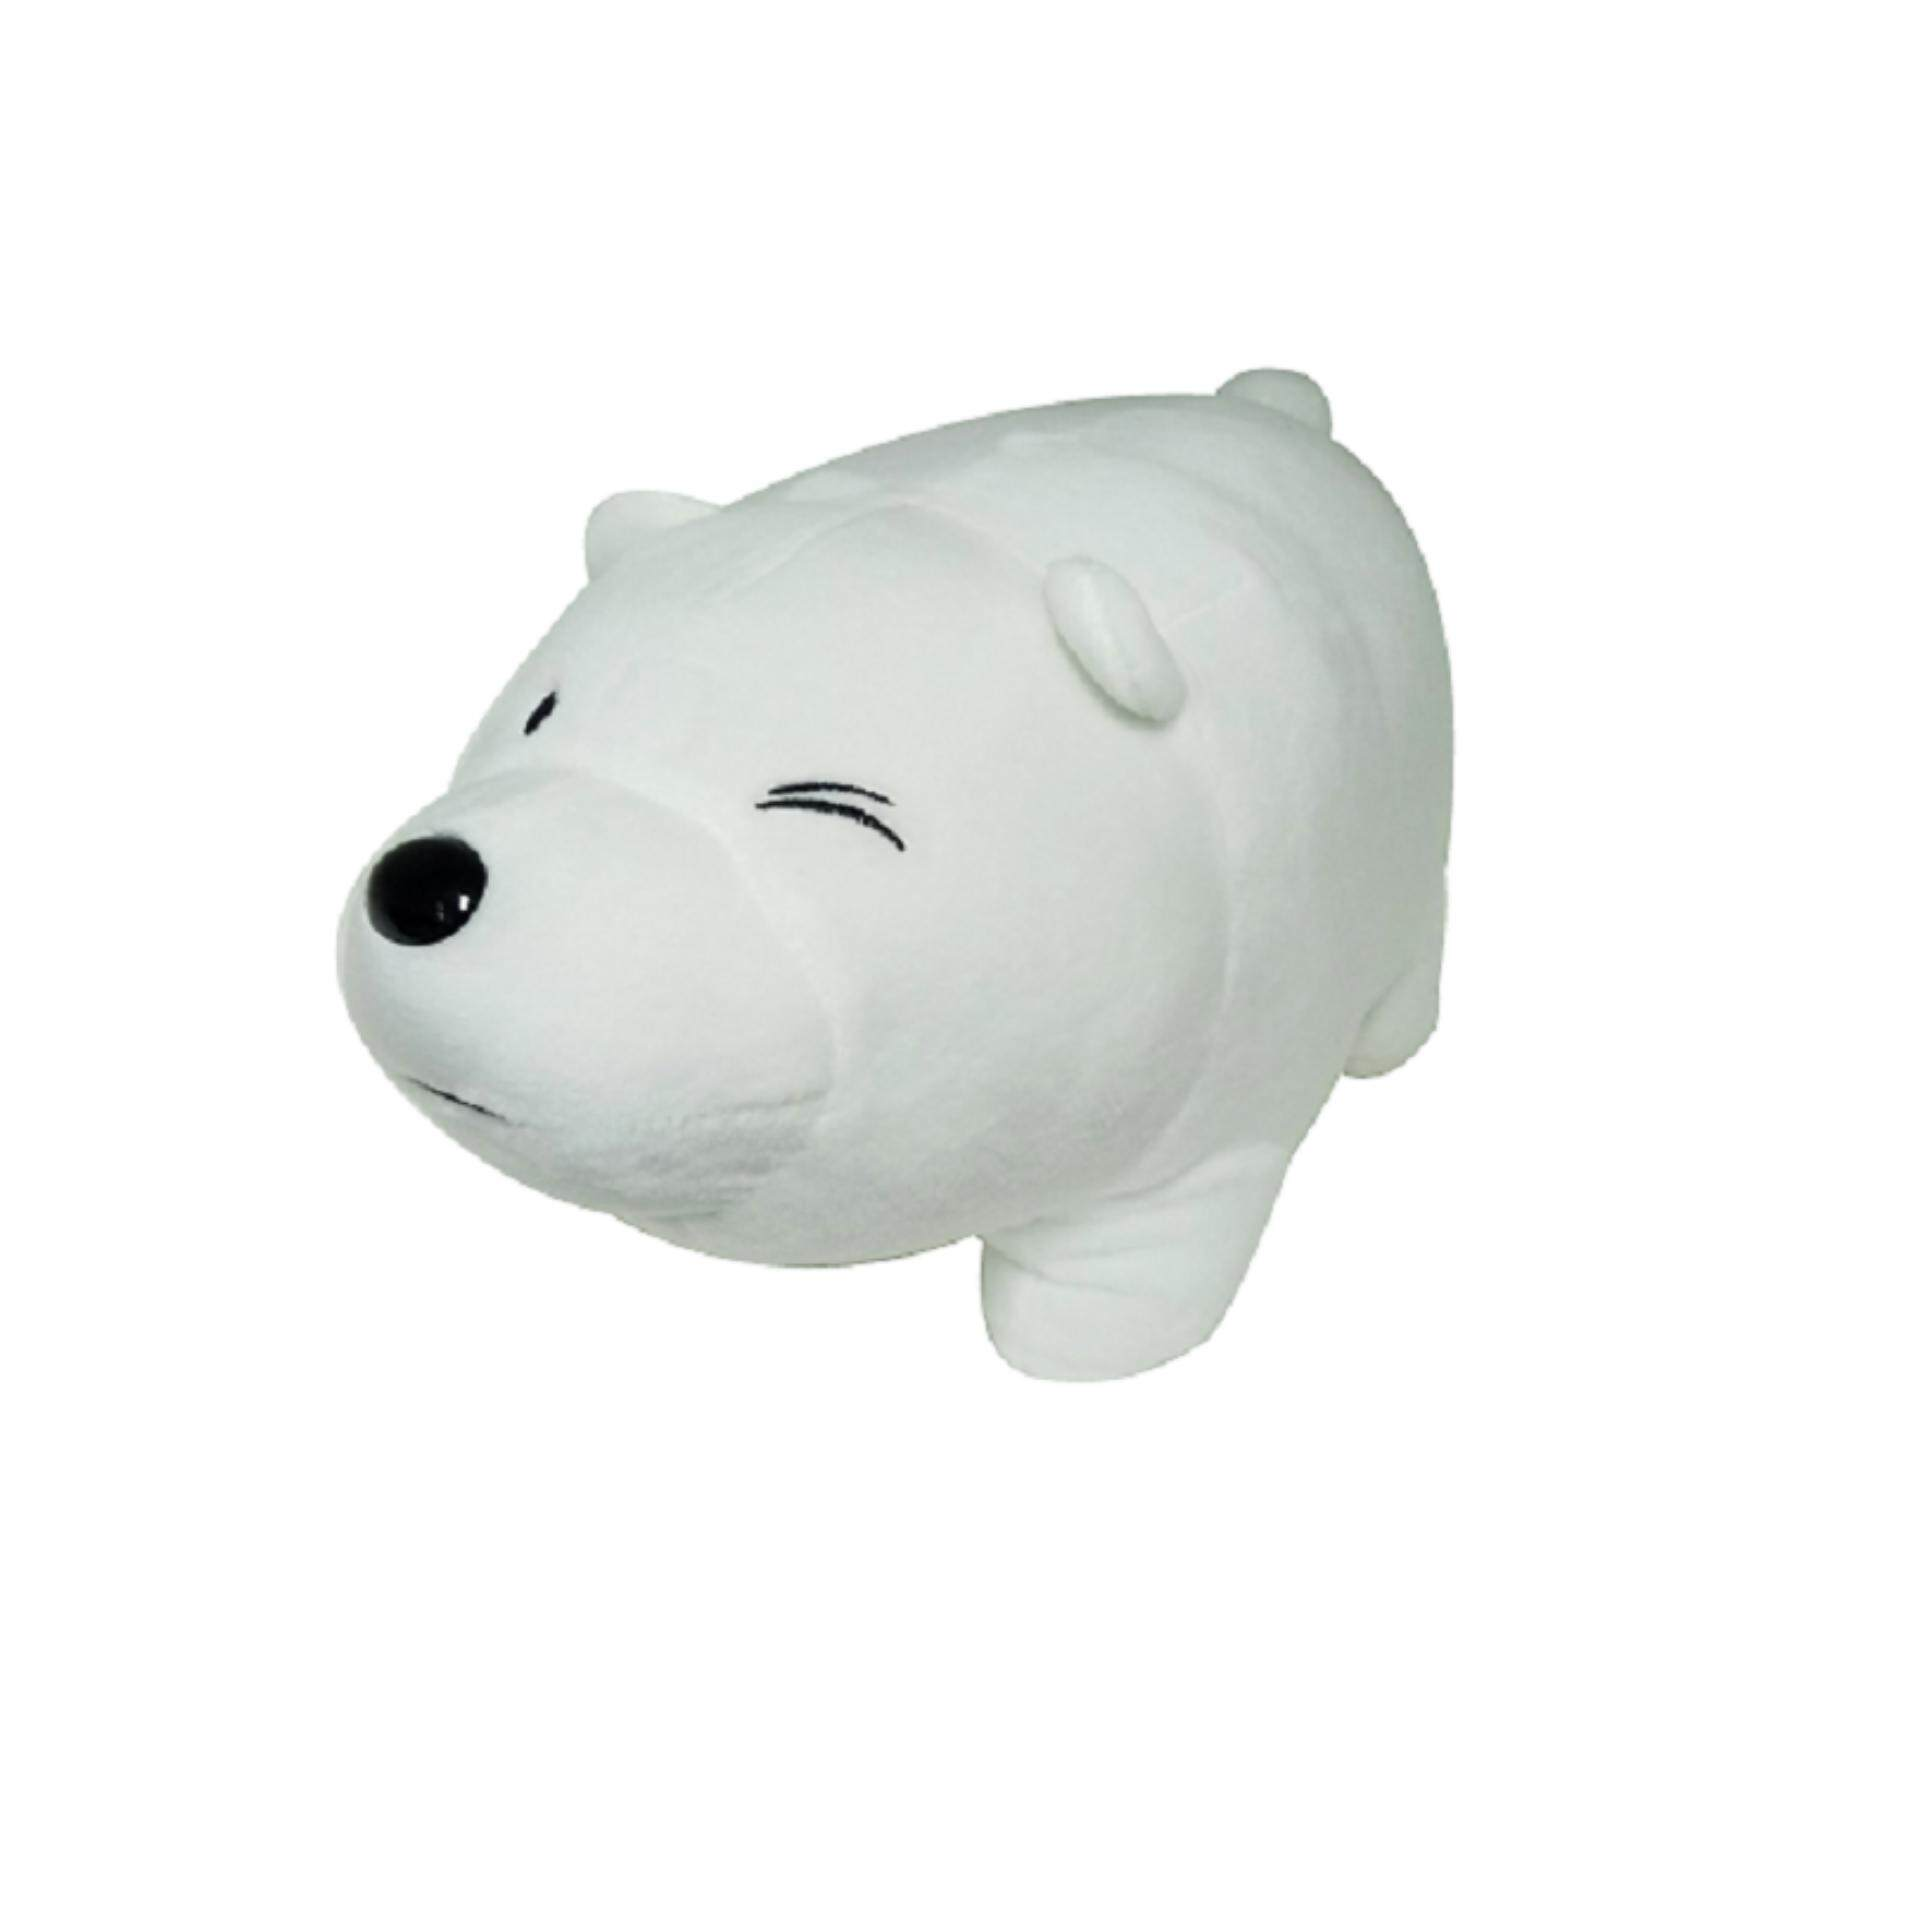 We Bare Bears Plush Toy With Magnet - Ice Bear toys for girls